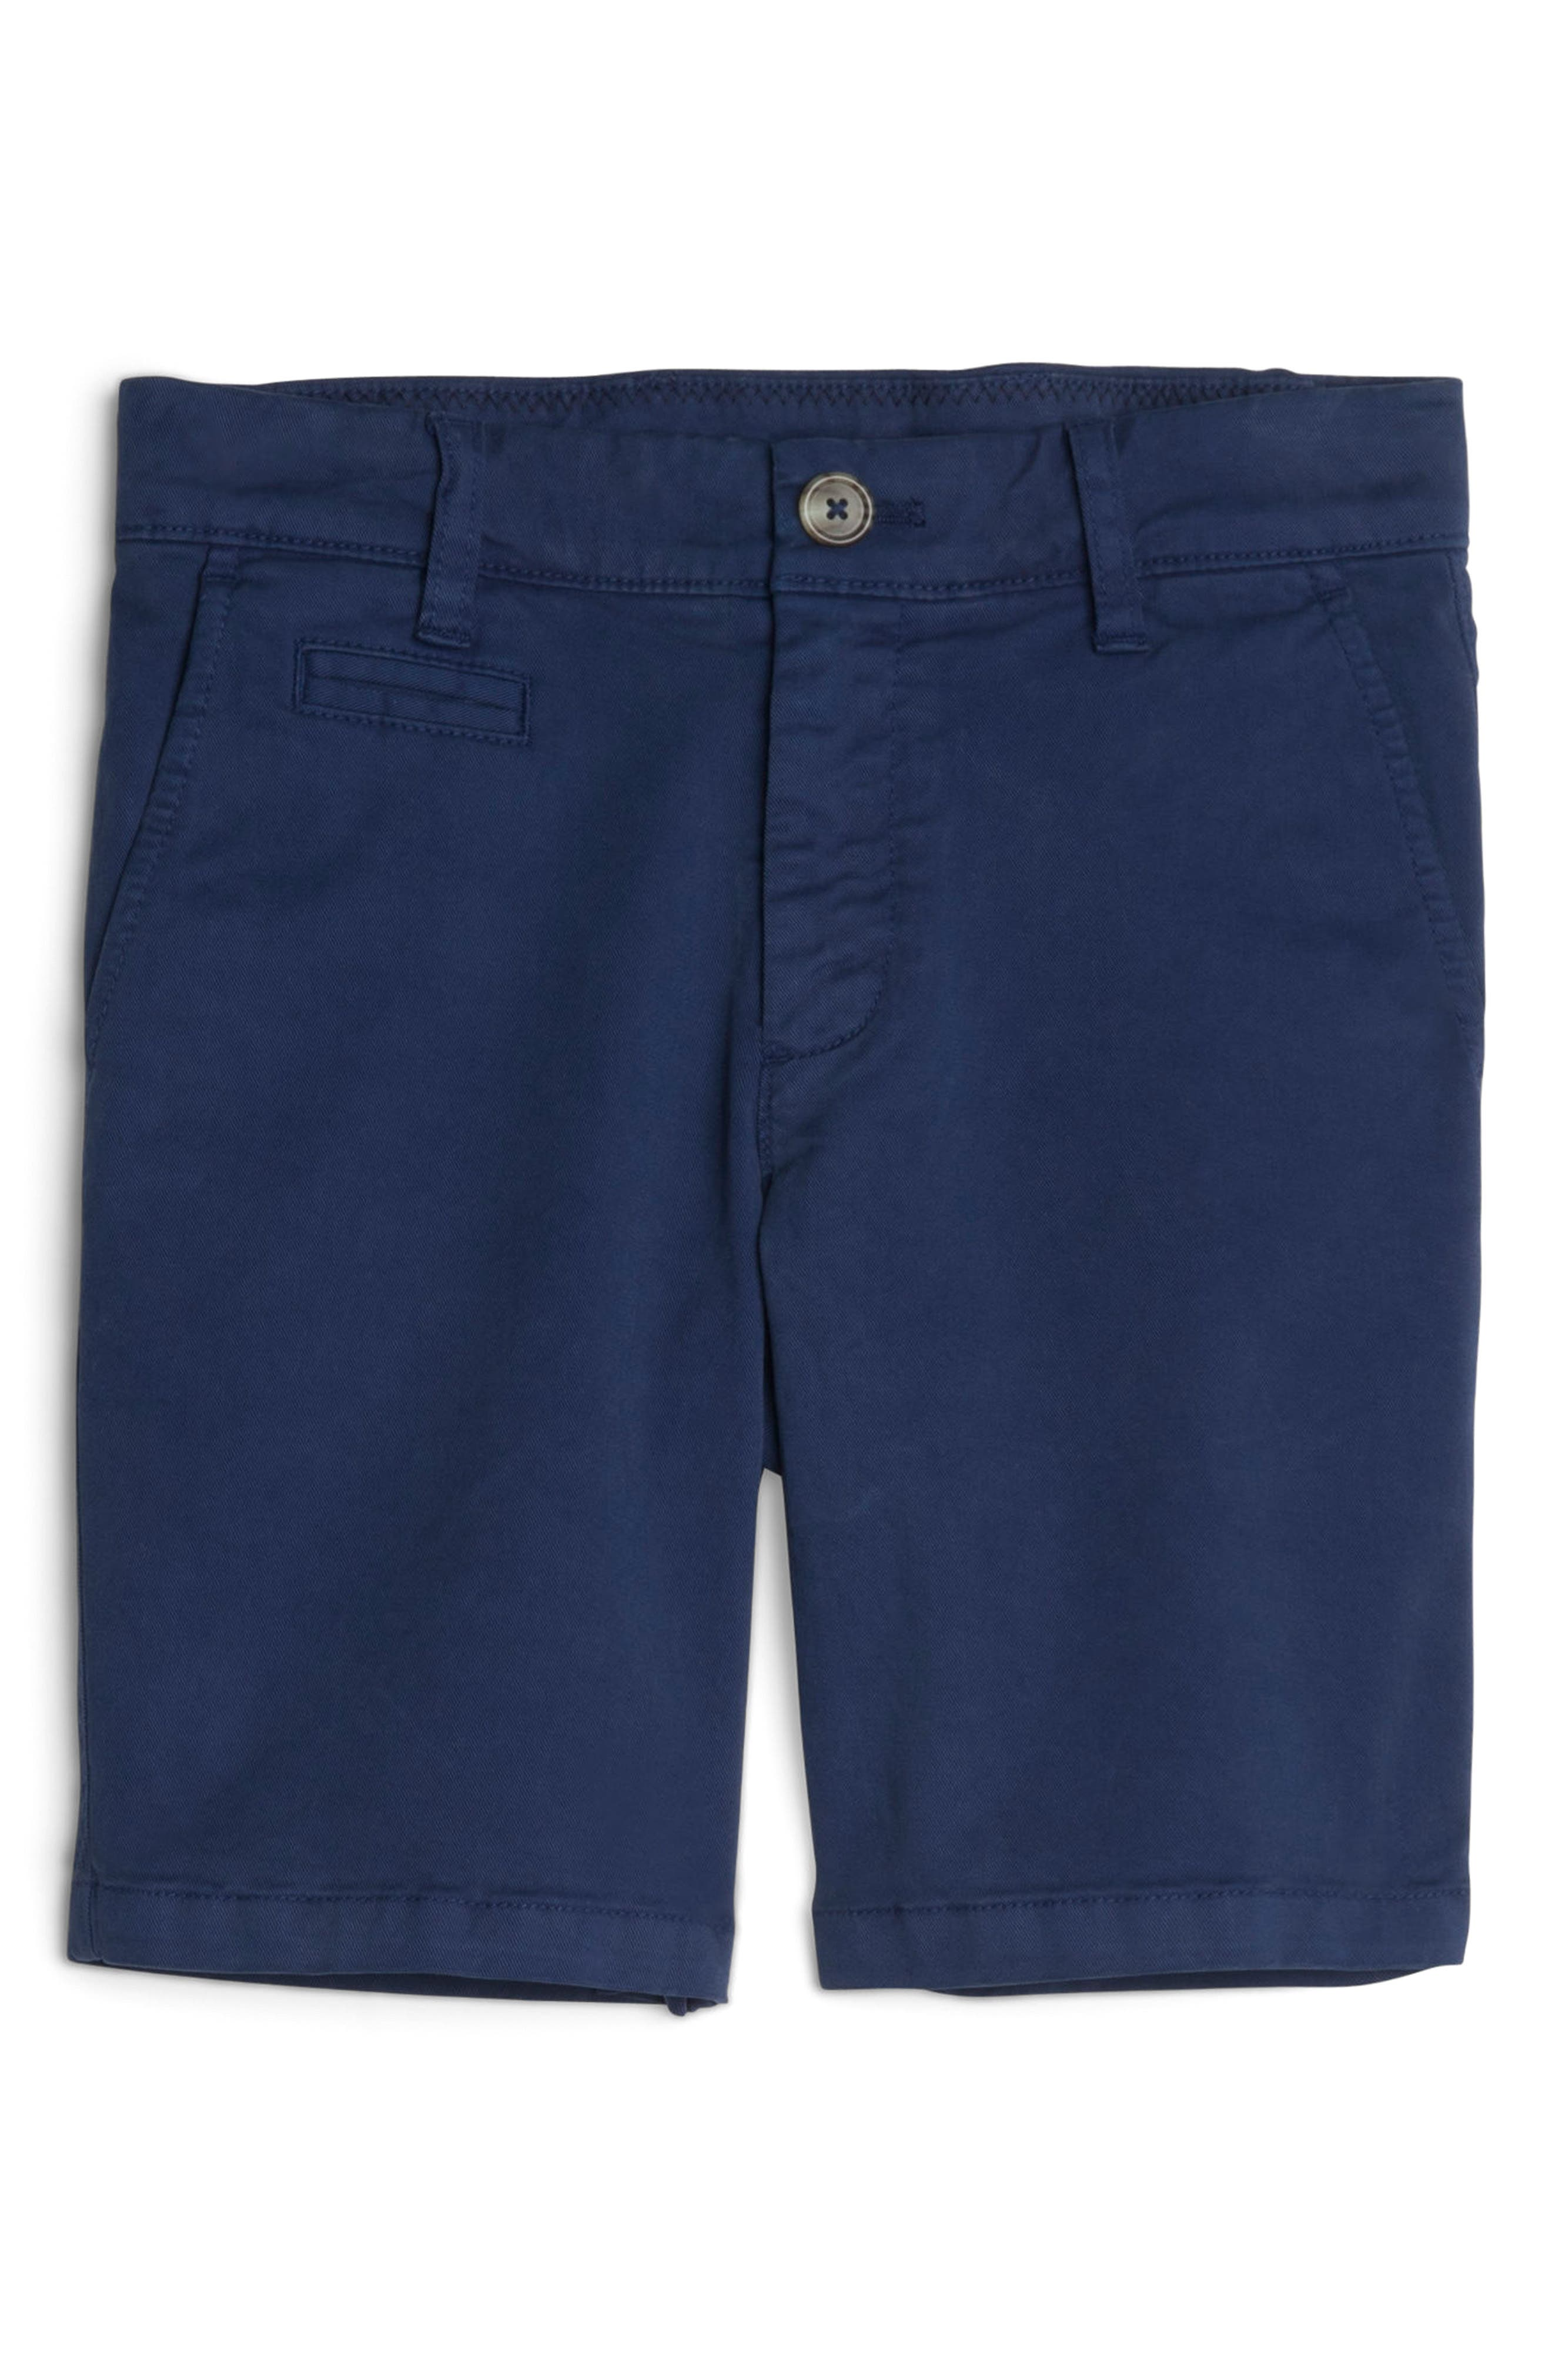 Neal Cotton Twill Shorts,                         Main,                         color, High Tide